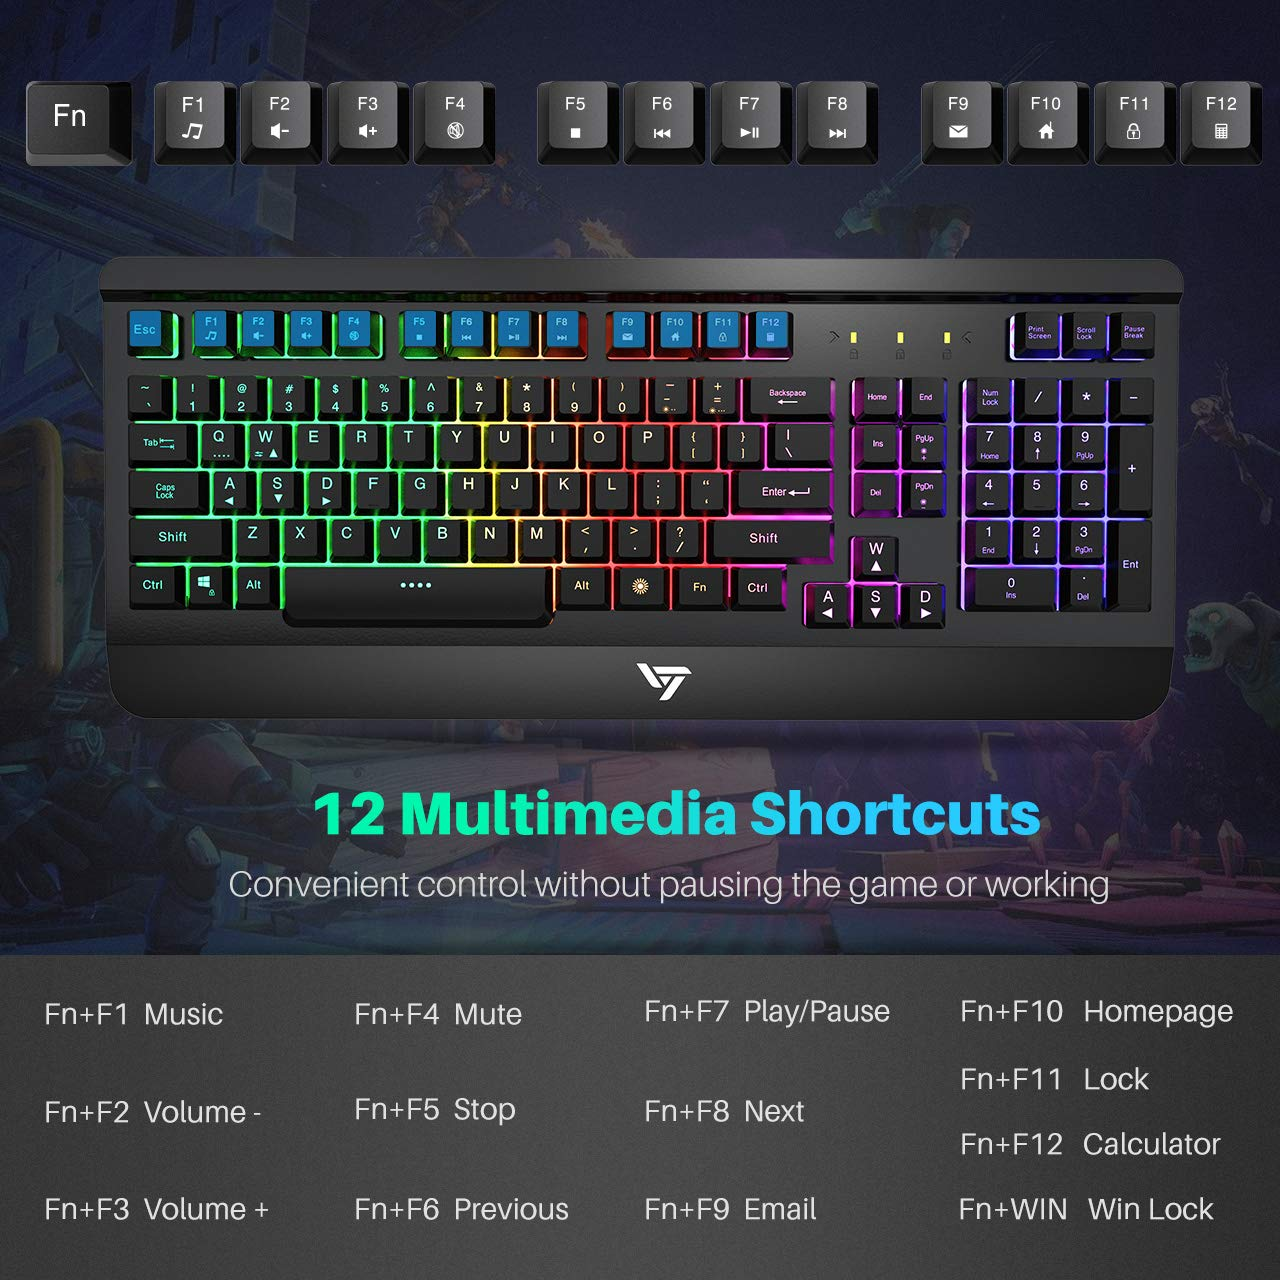 VicTsing Gaming Keyboard Mouse Combo, Ultra-Slim Rainbow LED Backlit Keyboard with Ergonomic Wrist Rest, Programmable 6 Button Mouse for Windows PC Gamer, Spill-Resistant Design - Black by VicTsing (Image #4)